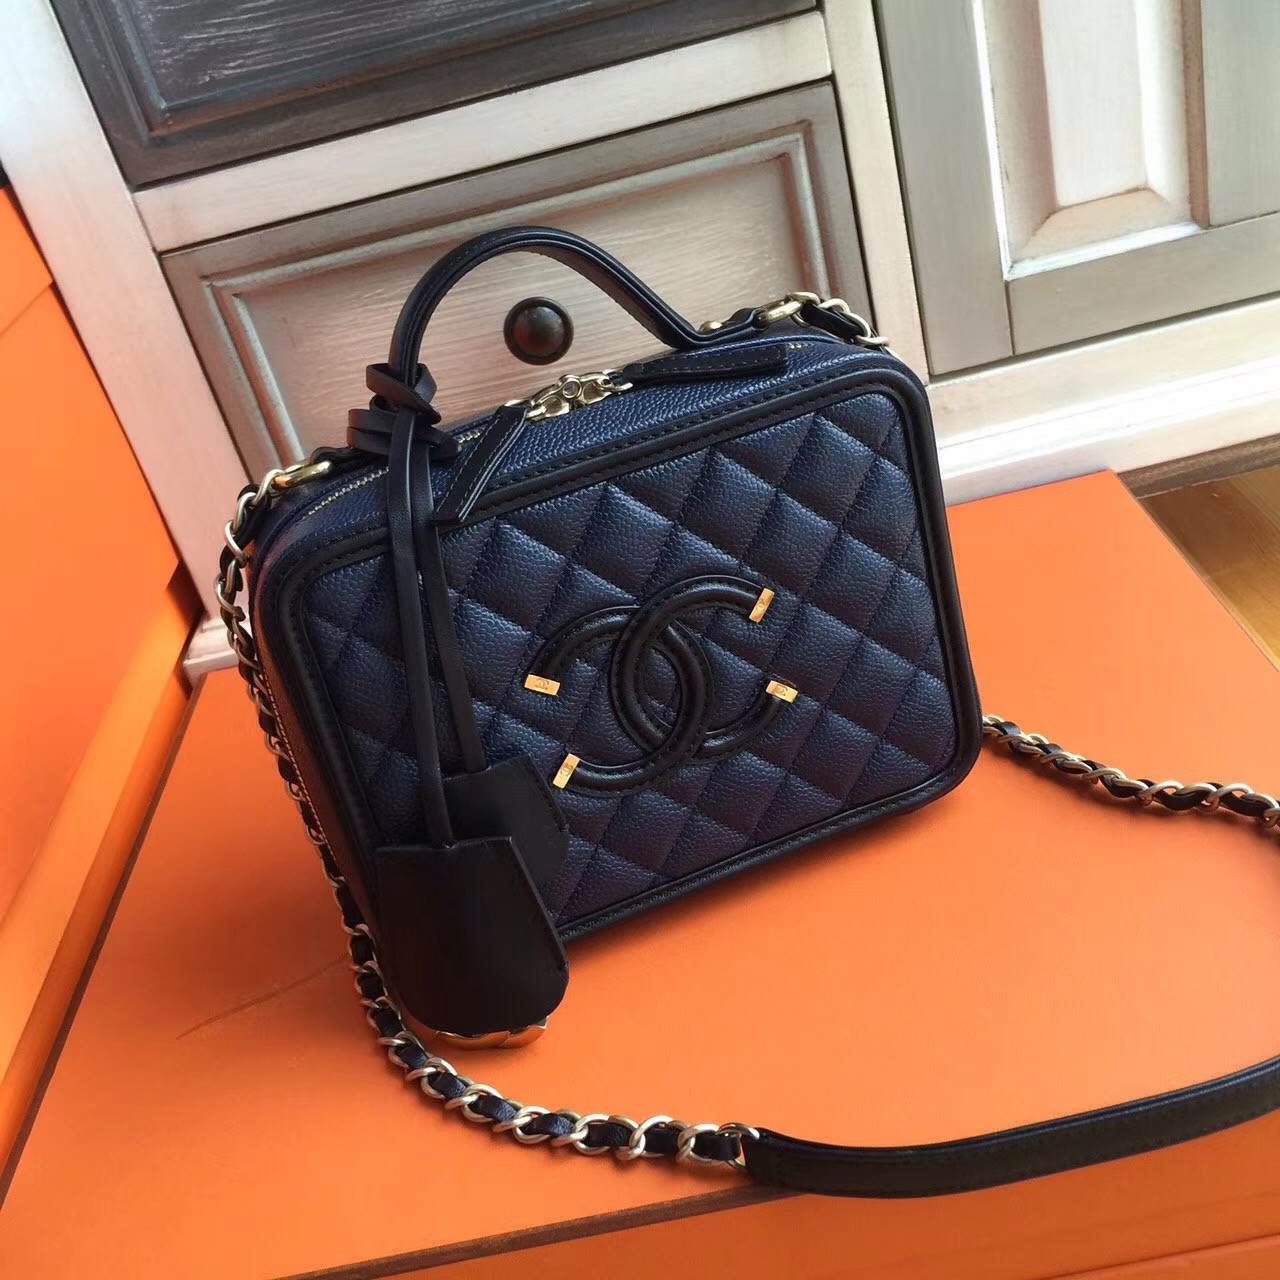 Chanel Cc Filigree Vanity Case Bag Medium Black Blue